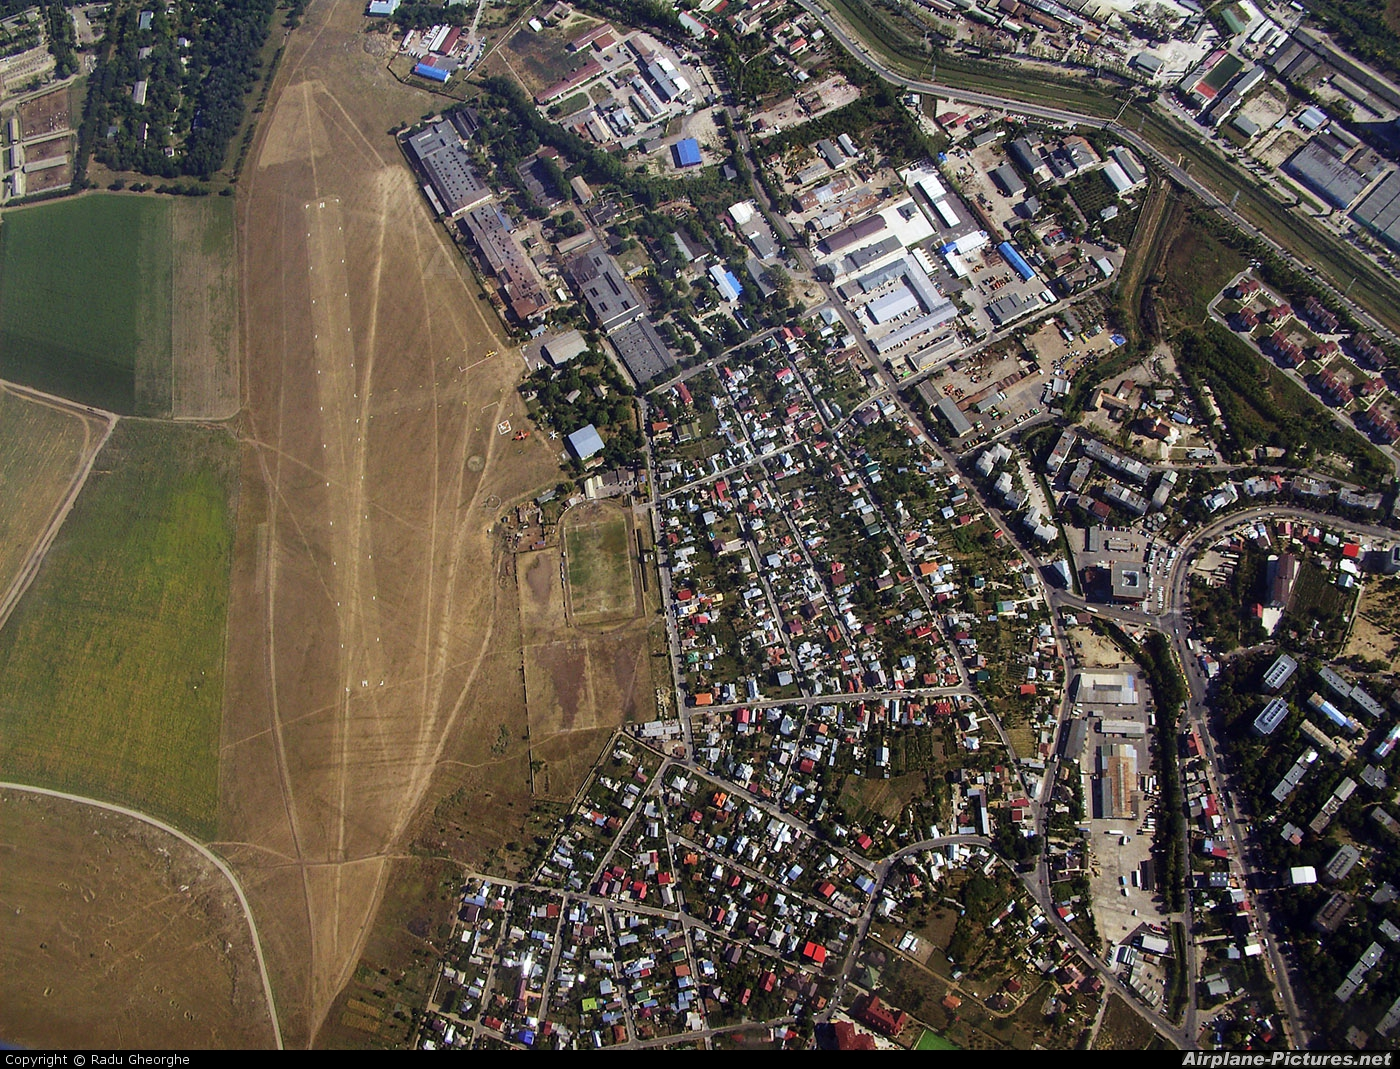 - Airport Overview - aircraft at Iasi-South